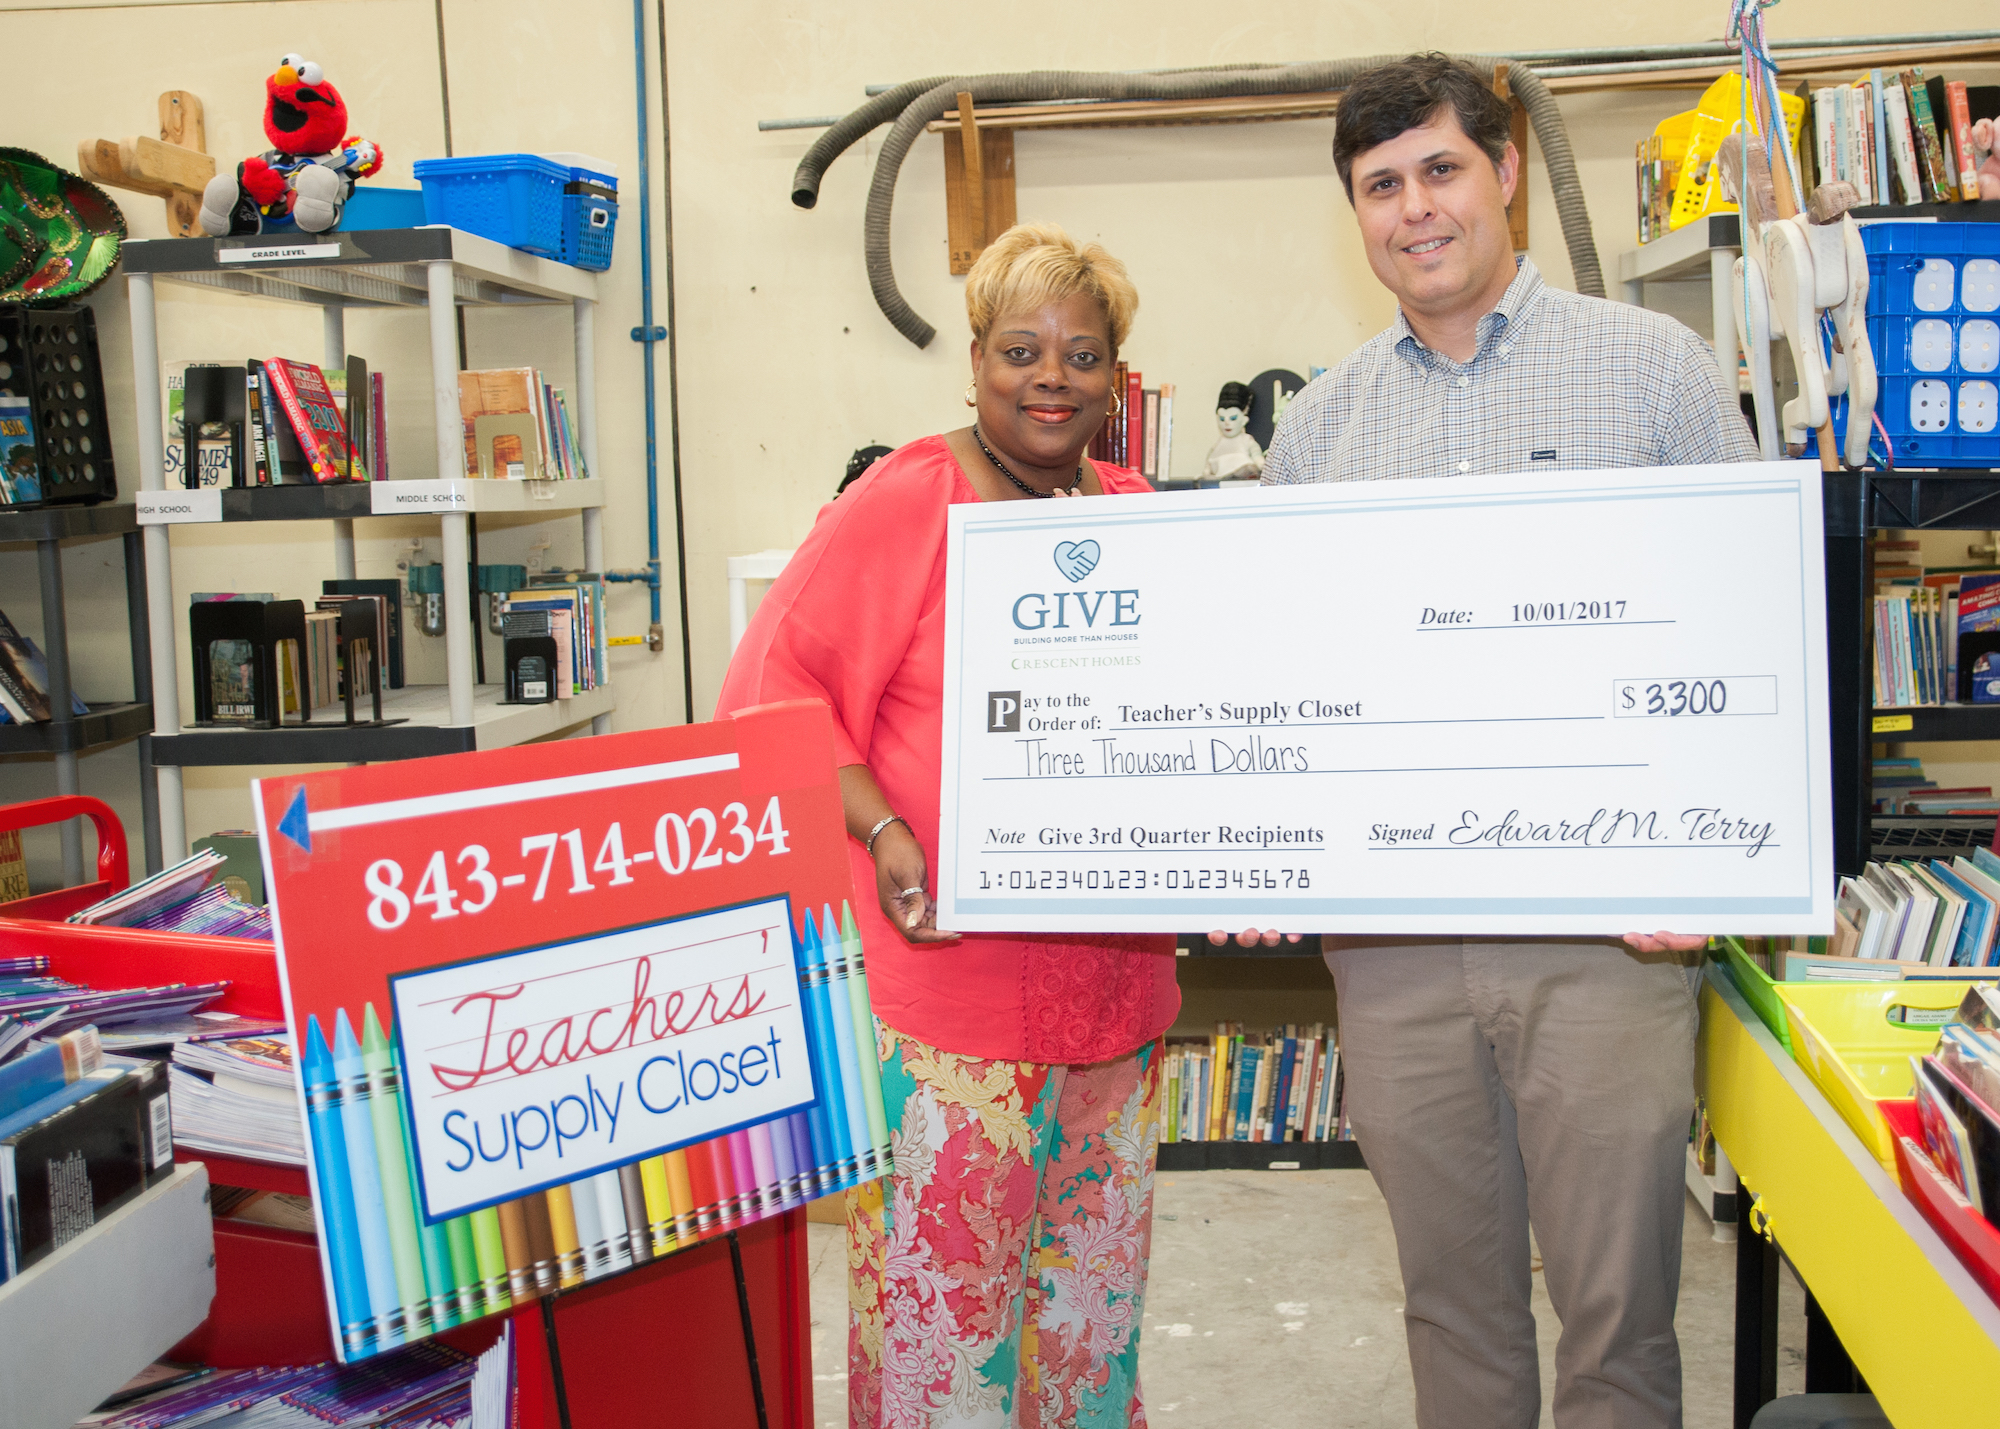 Crescent Homes GIVE Quarter 3 Teachers Supply Closet